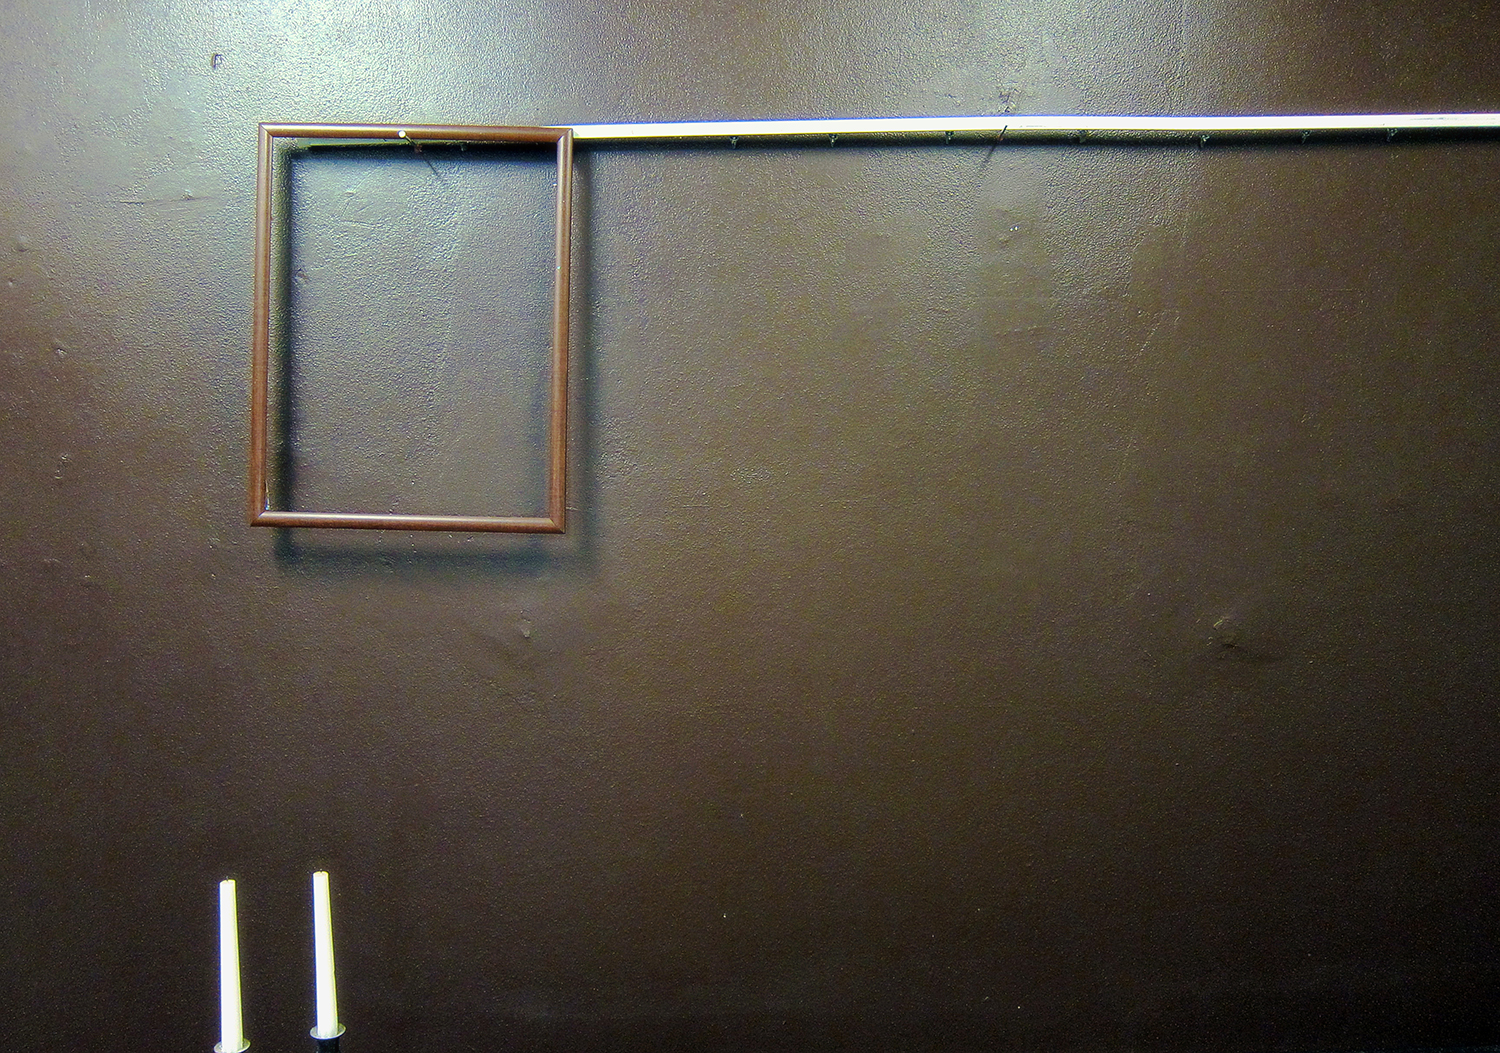 x Loop 9 image 3 empty frame on wall two candles 3.jpg